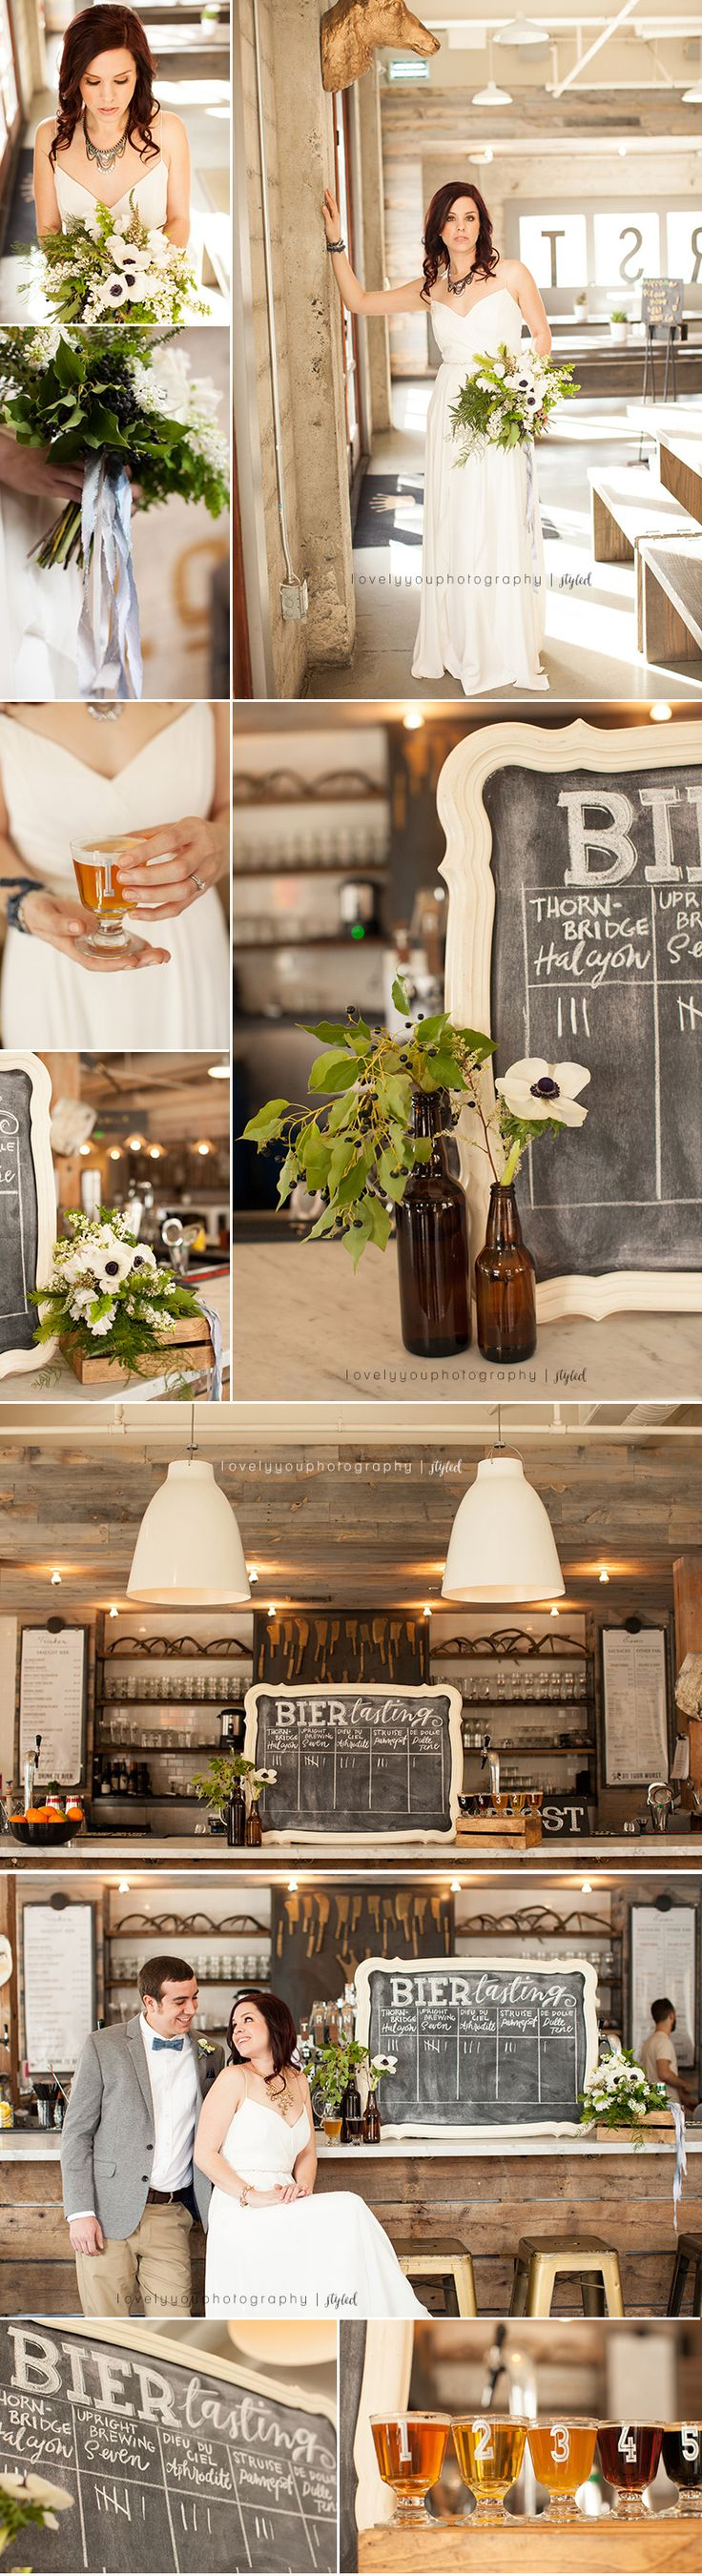 Beer themed wedding at LowBrau Bierhall #beerwedding #brewerywedding #onthegobride Photography by Lovely You Photography Planner and designer of our shoot was Artsy Heartsy Events. Invitations by Meredith Carty Design Floral Design by Thistle and Honey Vintage Rentals by Dogwood Party Rentals Chalkboard Signs by Wedding Chalk Art Escort Cards by Pigment & Parchment Cake by Ettore's European Bakery & Restaurant Brides Hair & Makeup by Jenifer Haupt Bride's Gown by La Soie Bridal